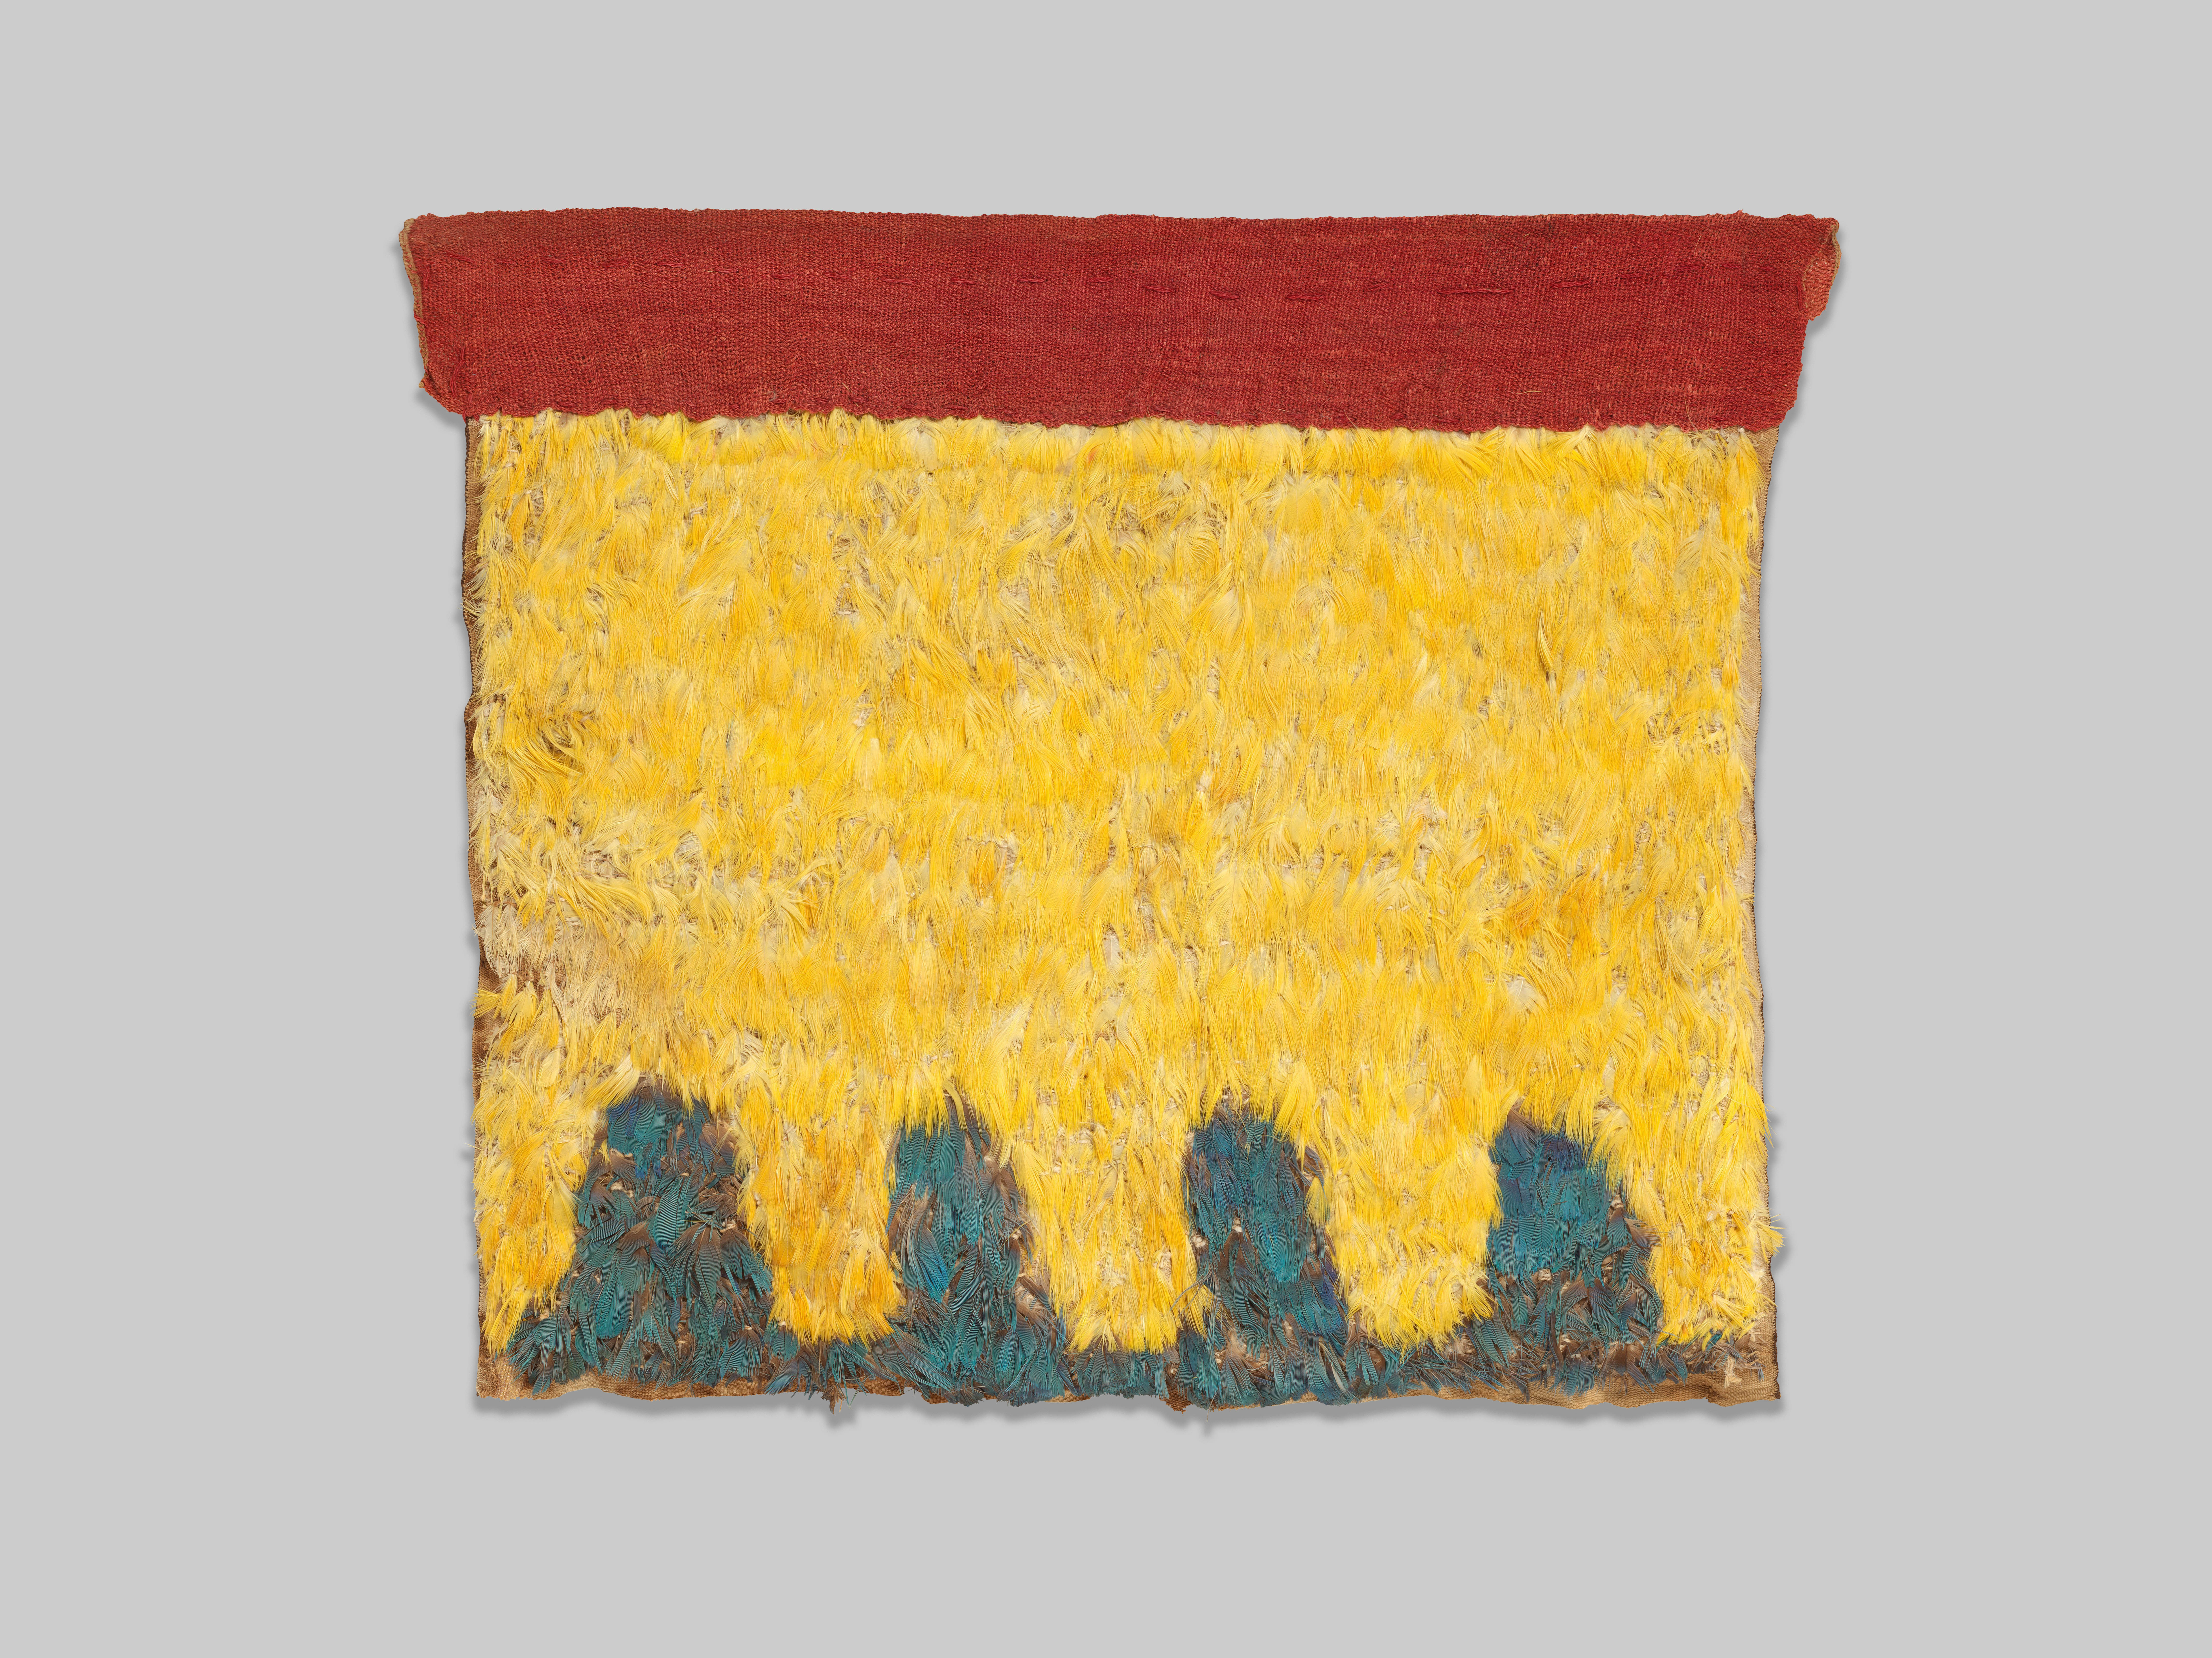 Feather panel (Blue and Yellow), c.800 AD